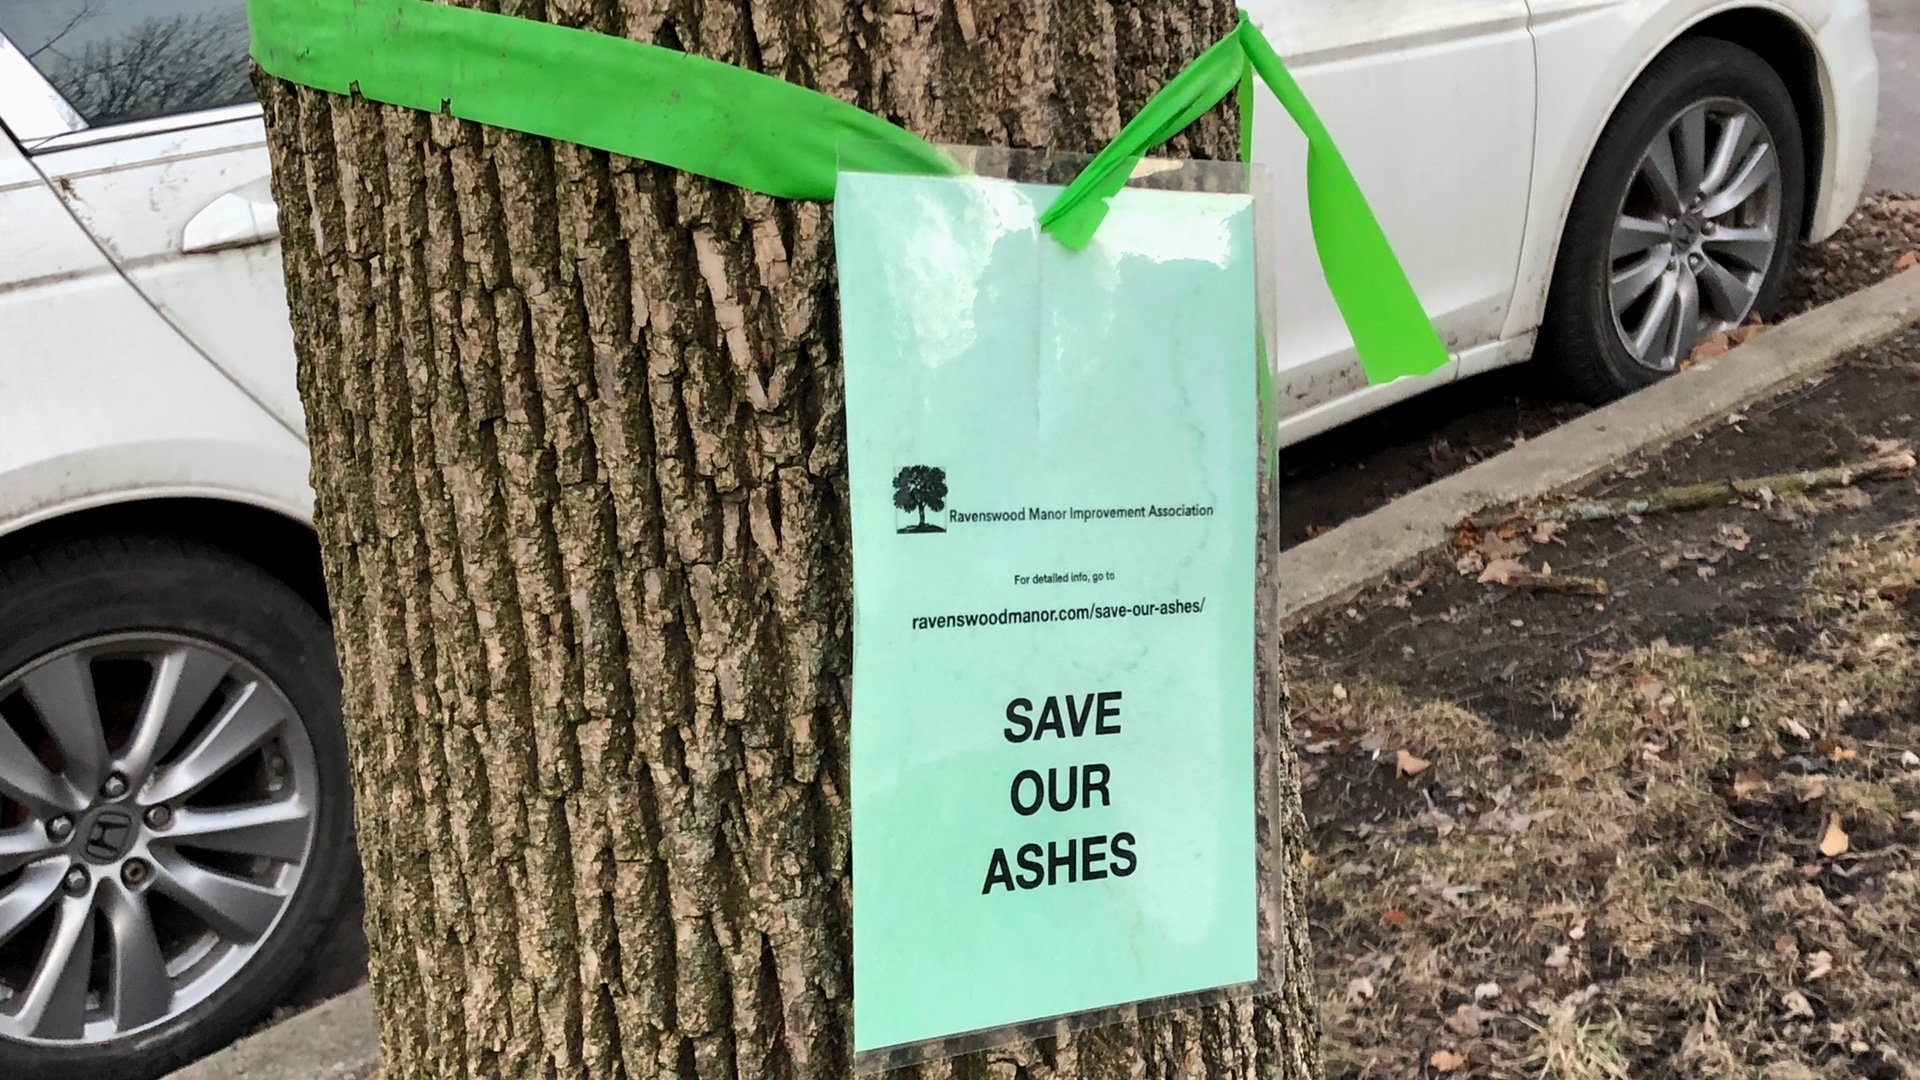 The City of Chicago has given up on treating parkway ash trees, so neighbors are taking it upon themselves. (Patty Wetli / WTTW News)